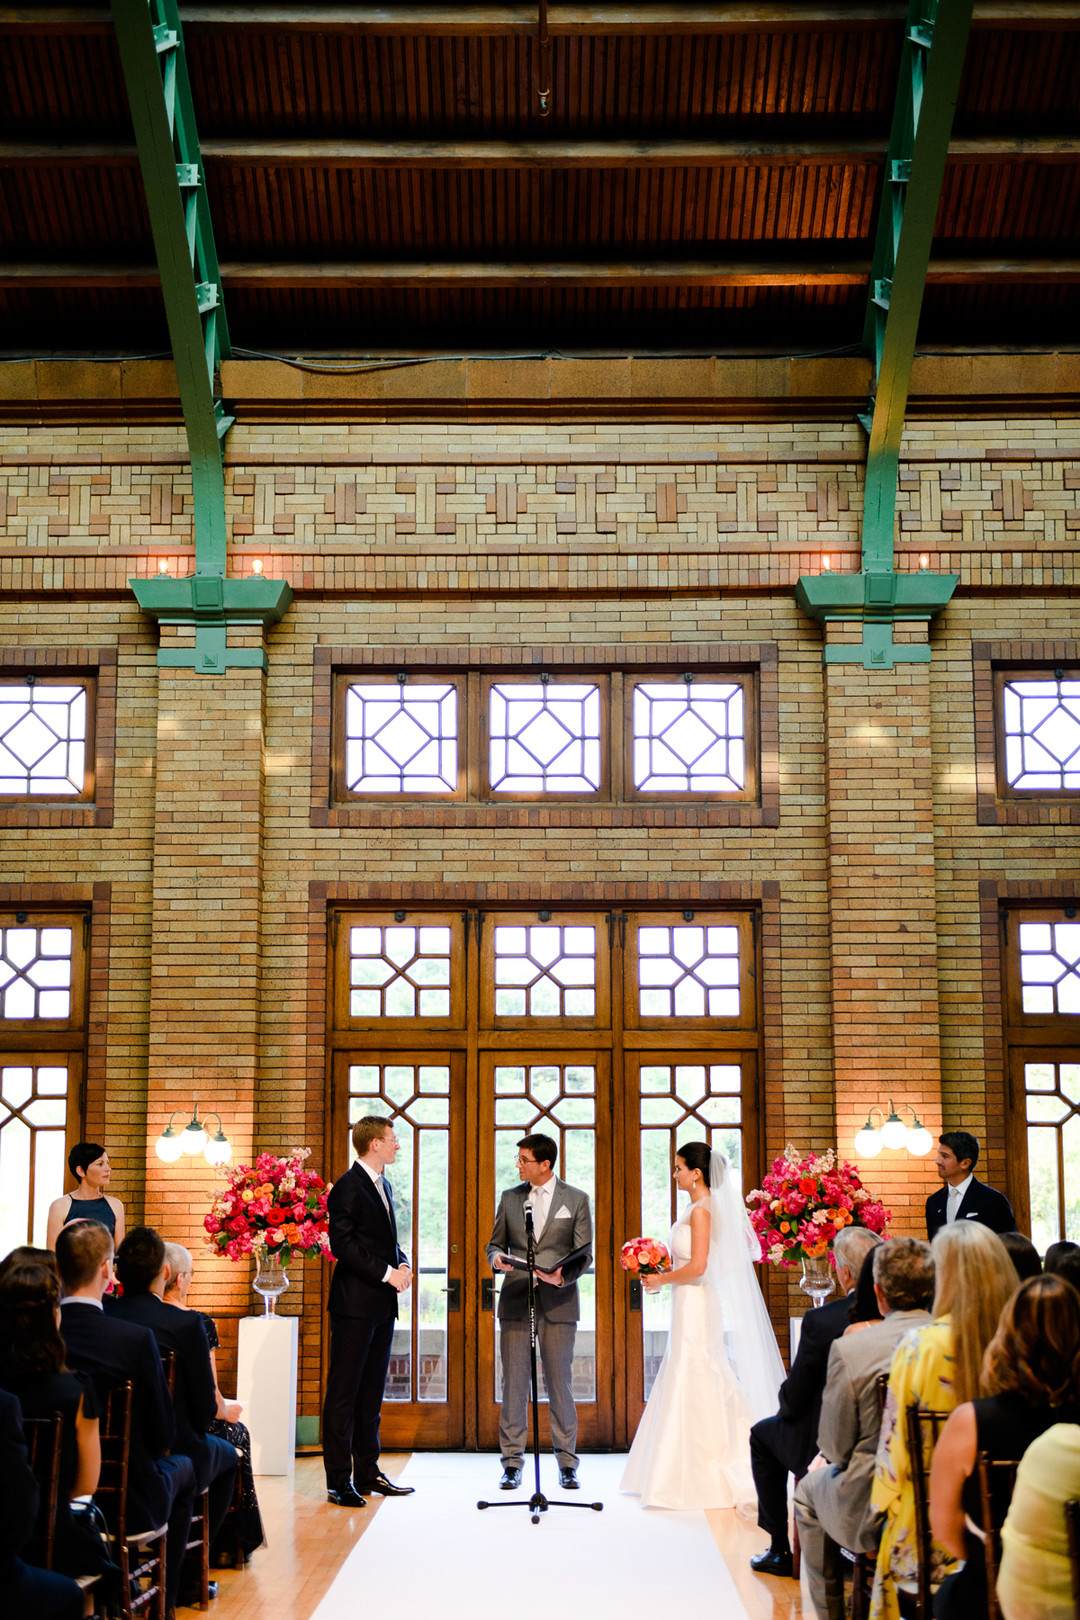 Timeless and colorful Chicago wedding in Lincoln Park captured by StudioThisIs. See more wedding ideas at CHItheeWED.com!